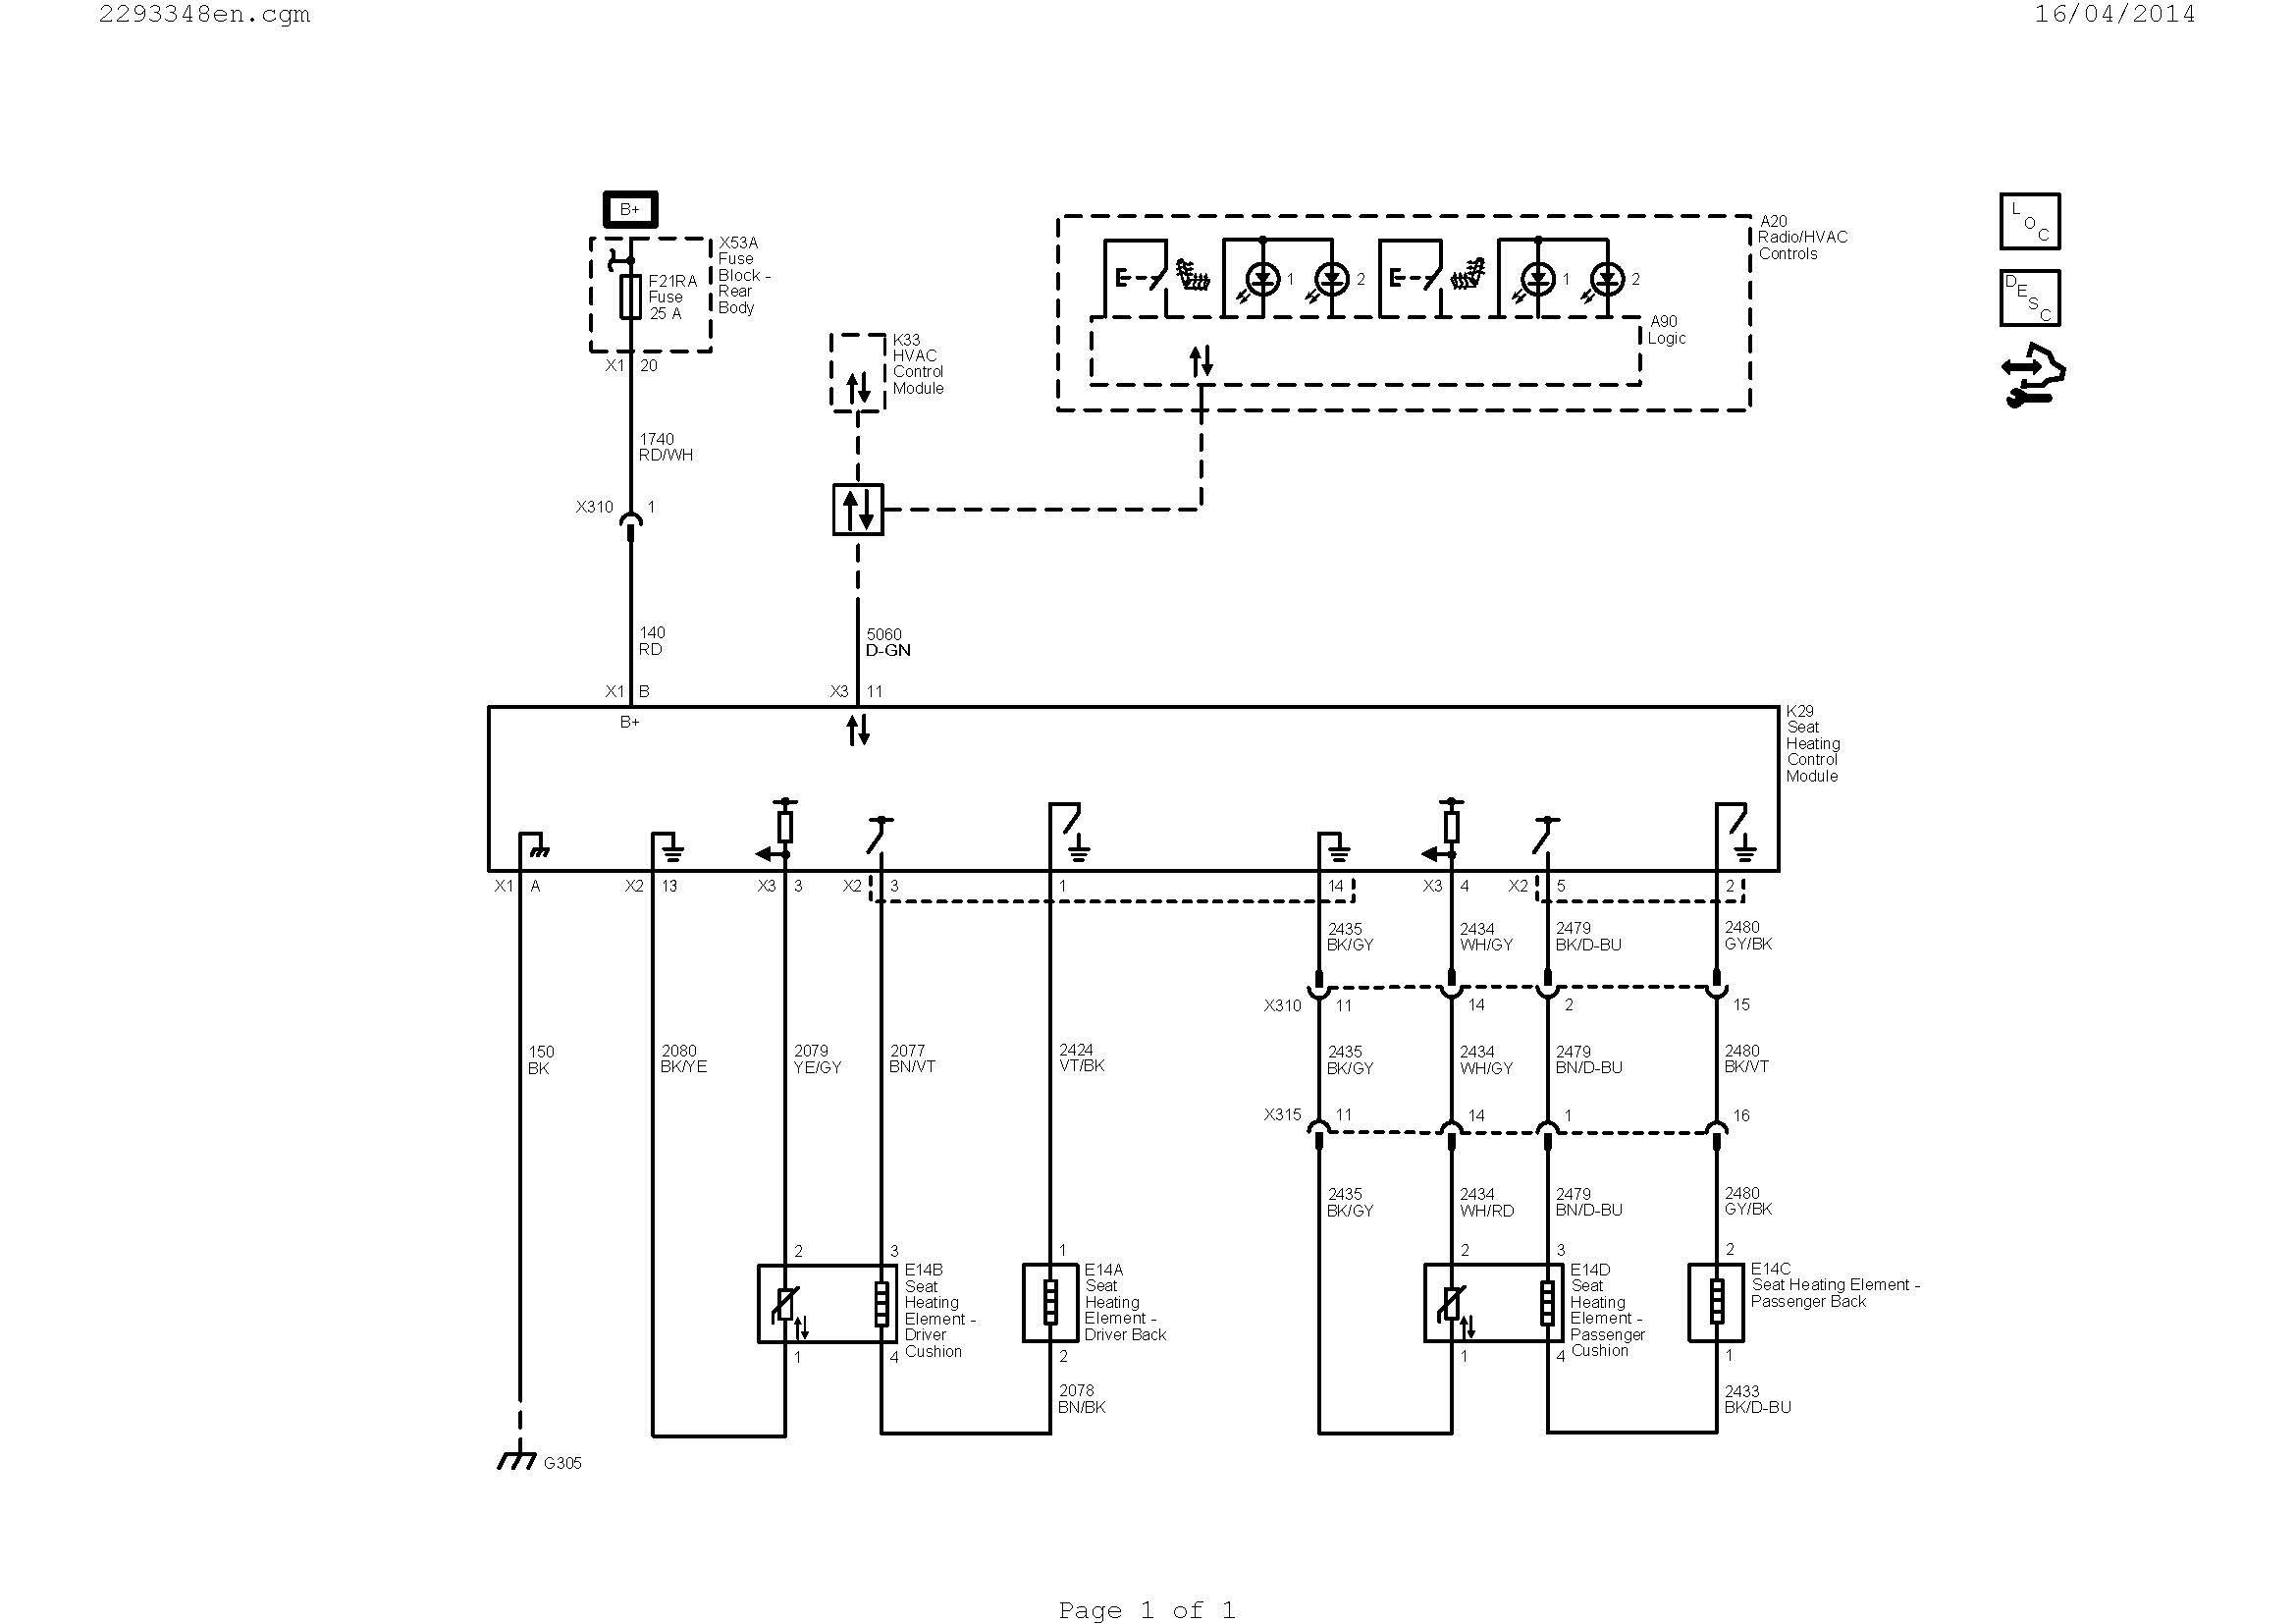 Wiring Diagram for Kohler Engine Valid Mechanical Engineering Painless Wiring Diagram Download